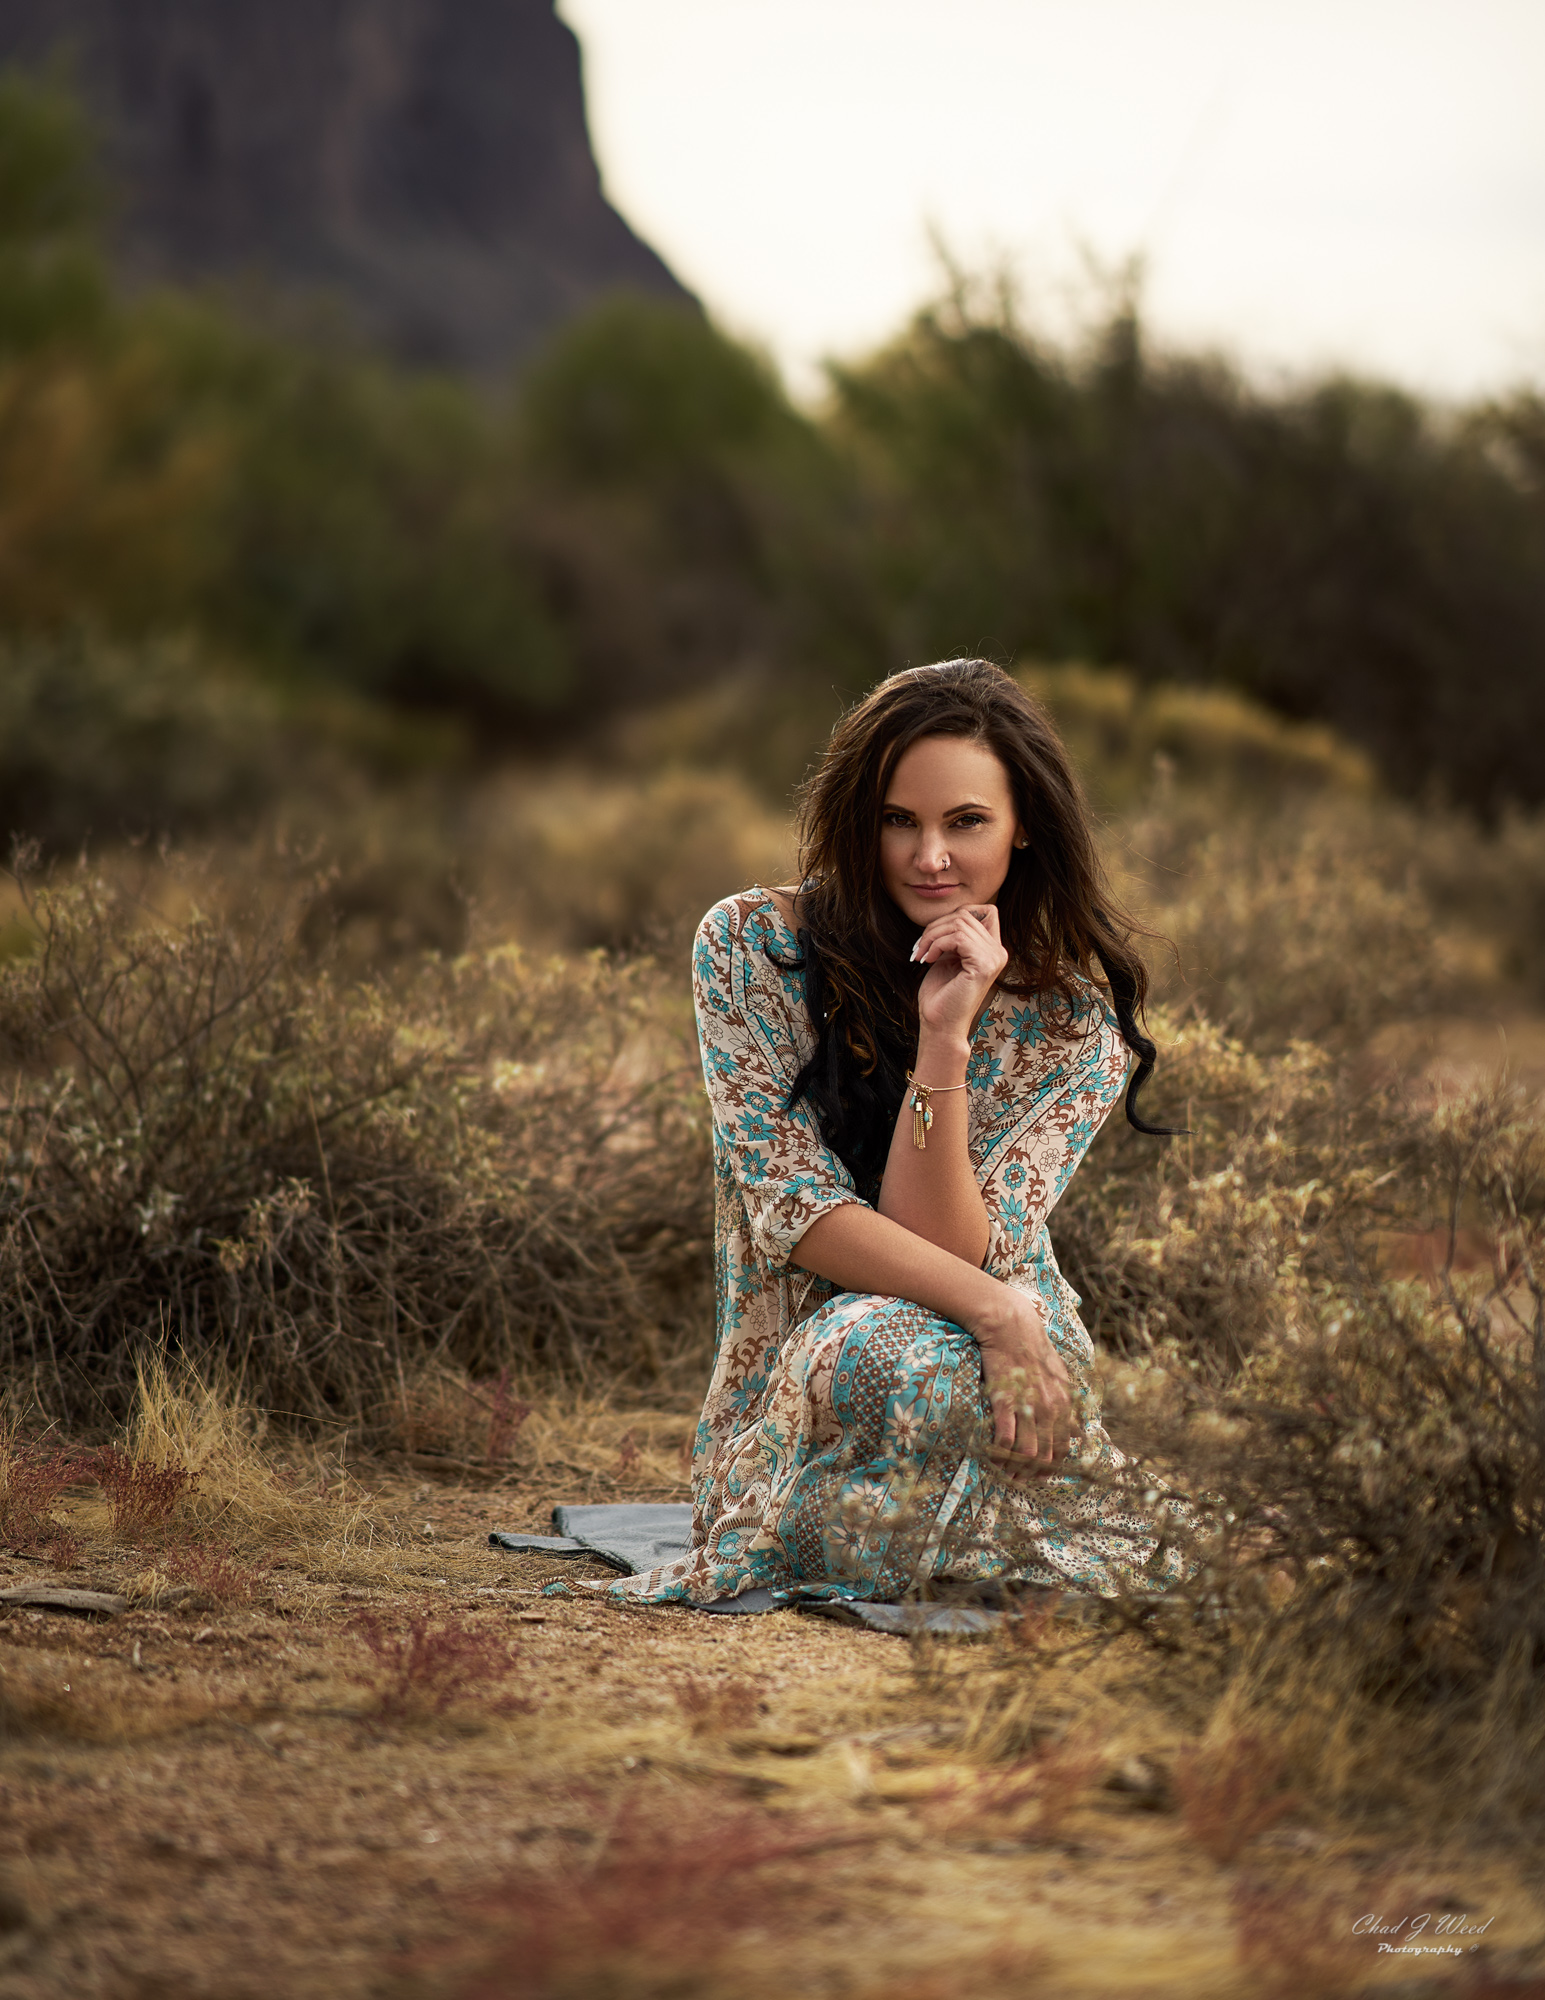 Erica's Editorial at Superstition Mountains by Mesa Arizona Portrait Photographer Chad Weed